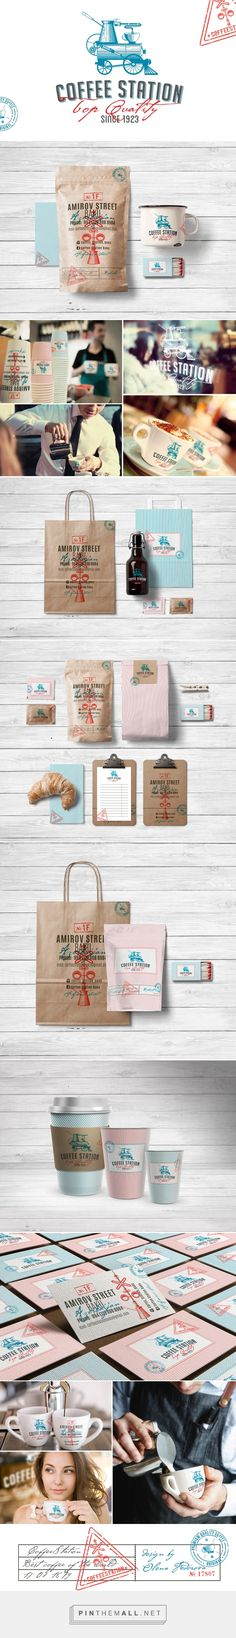 Branding packaging for the coffee shop Coffee Station on Behance by Olena Federova curated by Packaging Diva PD. Makes you want to get together for a cuppa.- 小清新